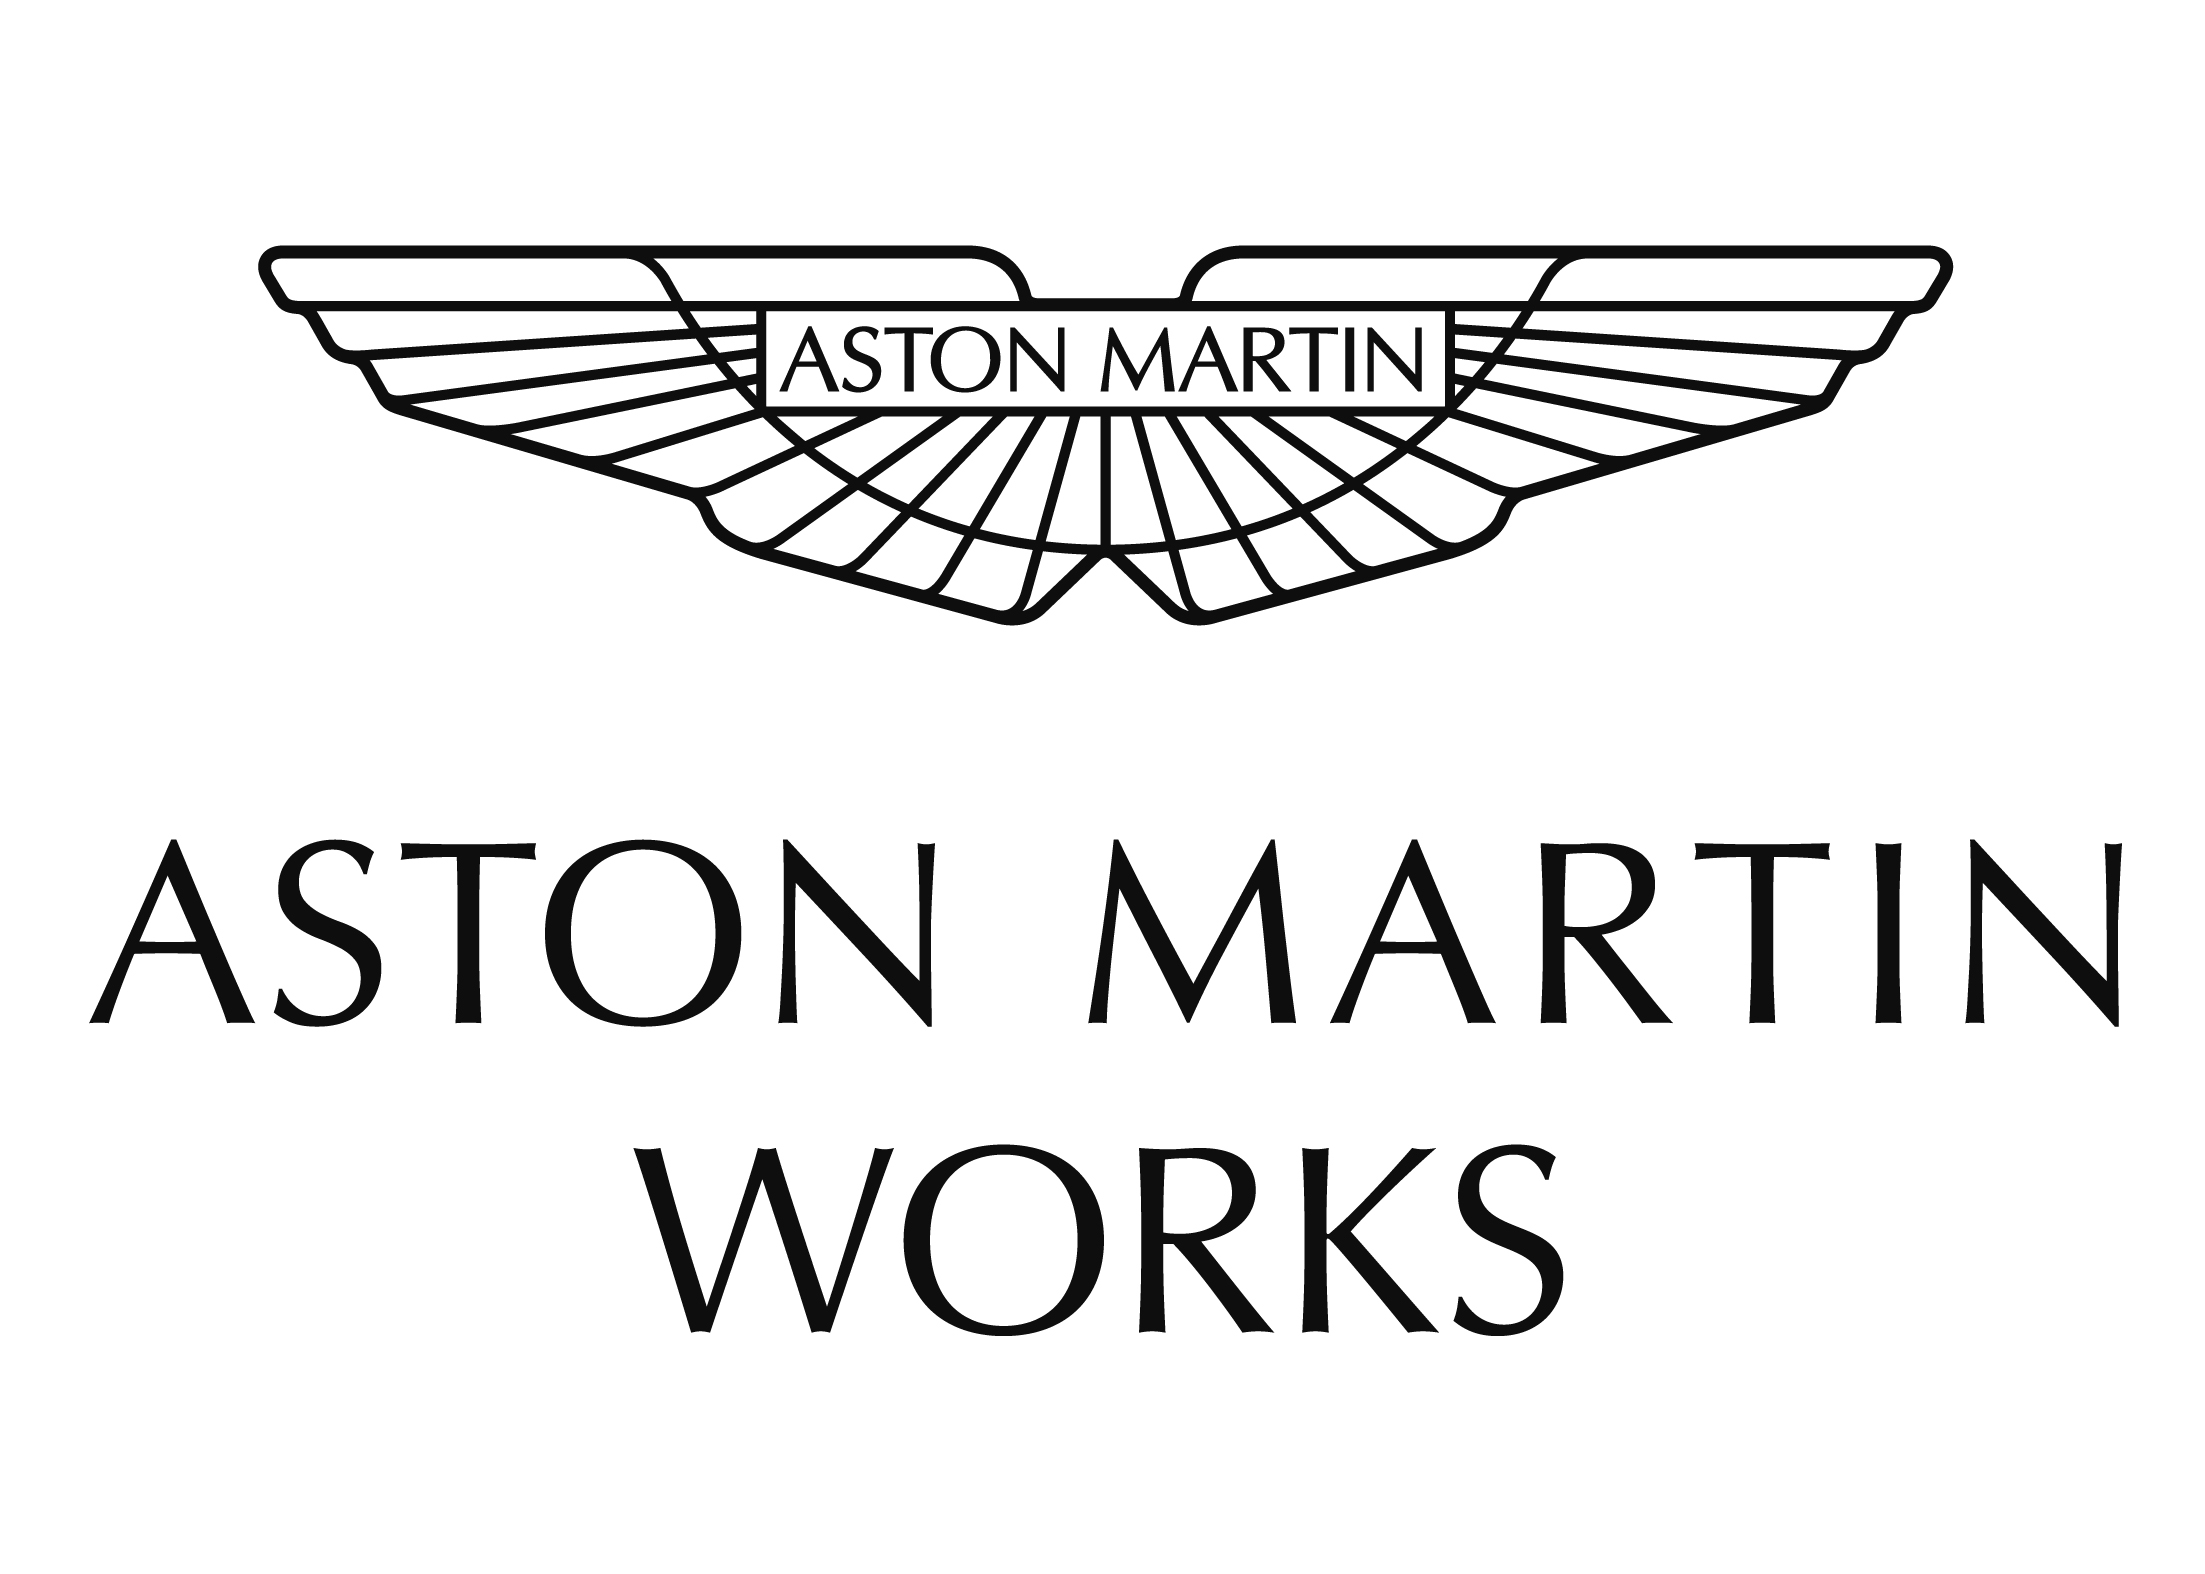 Used Aston Martin Classics cars for sale with PistonHeads